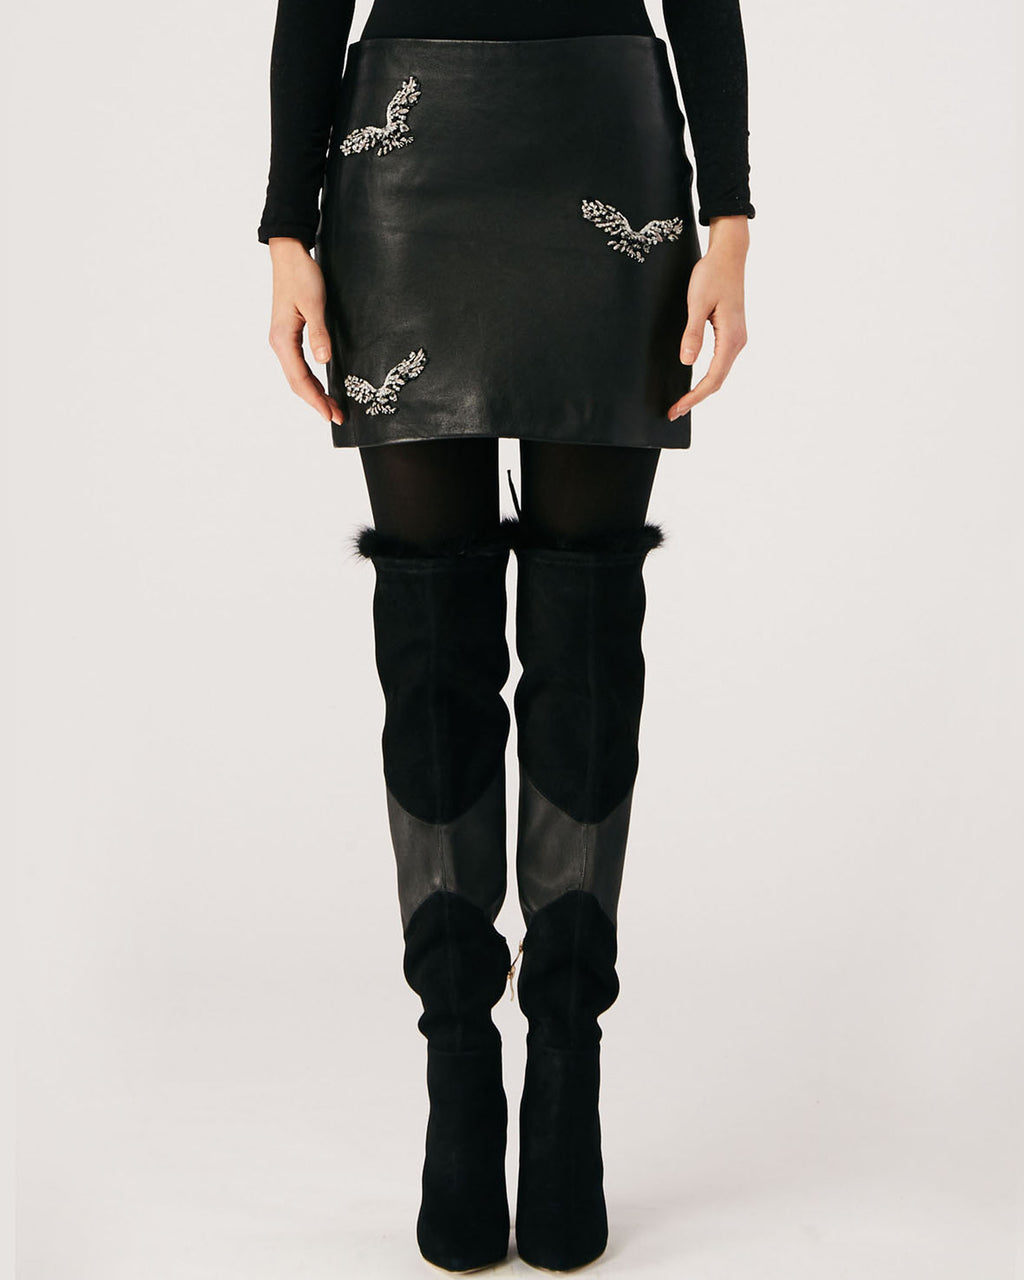 CF10242 - EMBELLISHED EAGLE MINI SKIRT - bottoms - skirts - This 100% leather mini skirt features embellished eagles and an exposed zipper for closure. Fully lined.